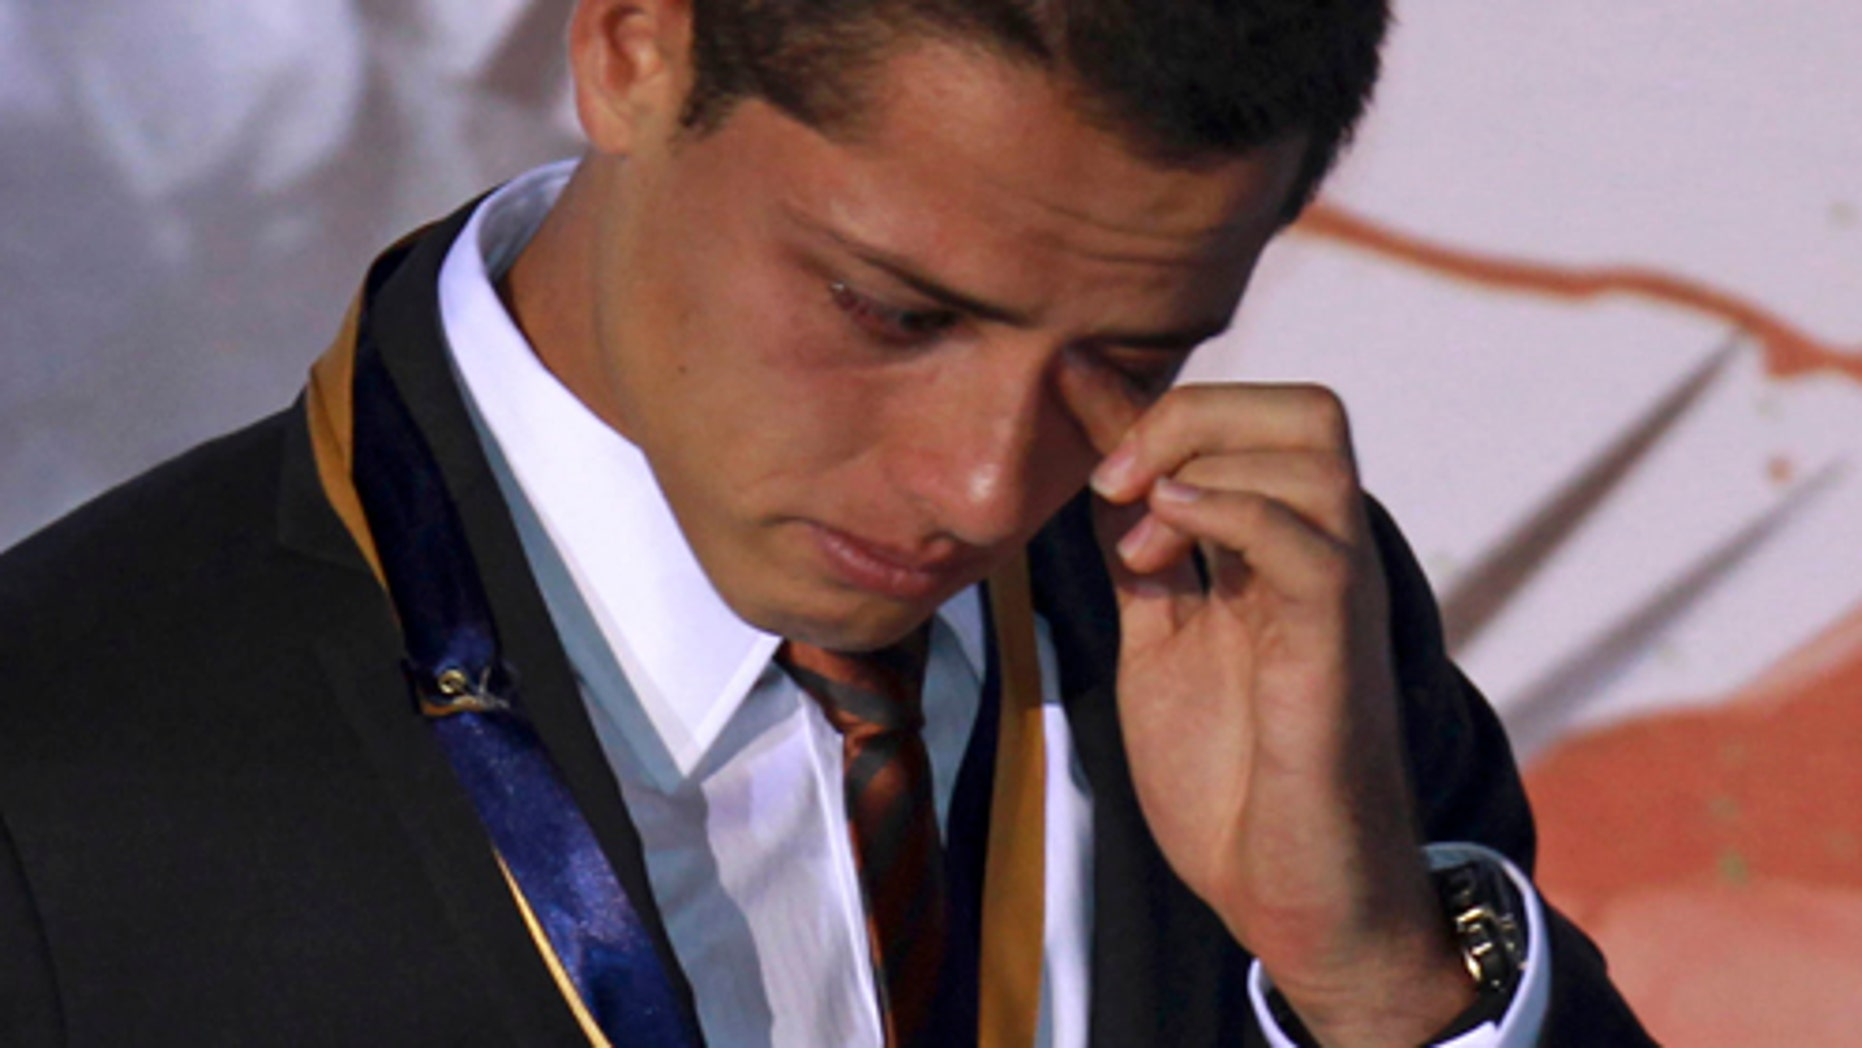 """July 21: Mexican soccer player Javier """"Chicharito"""" Hernandez, reacts during a ceremony in which he was named the 2011 Tourism Ambassador for the State of Jalisco in Guadalajara, Mexico. Chicharito currently plays for the  English football club Manchester United. (AP Photo/Bruno Gonzalez)"""